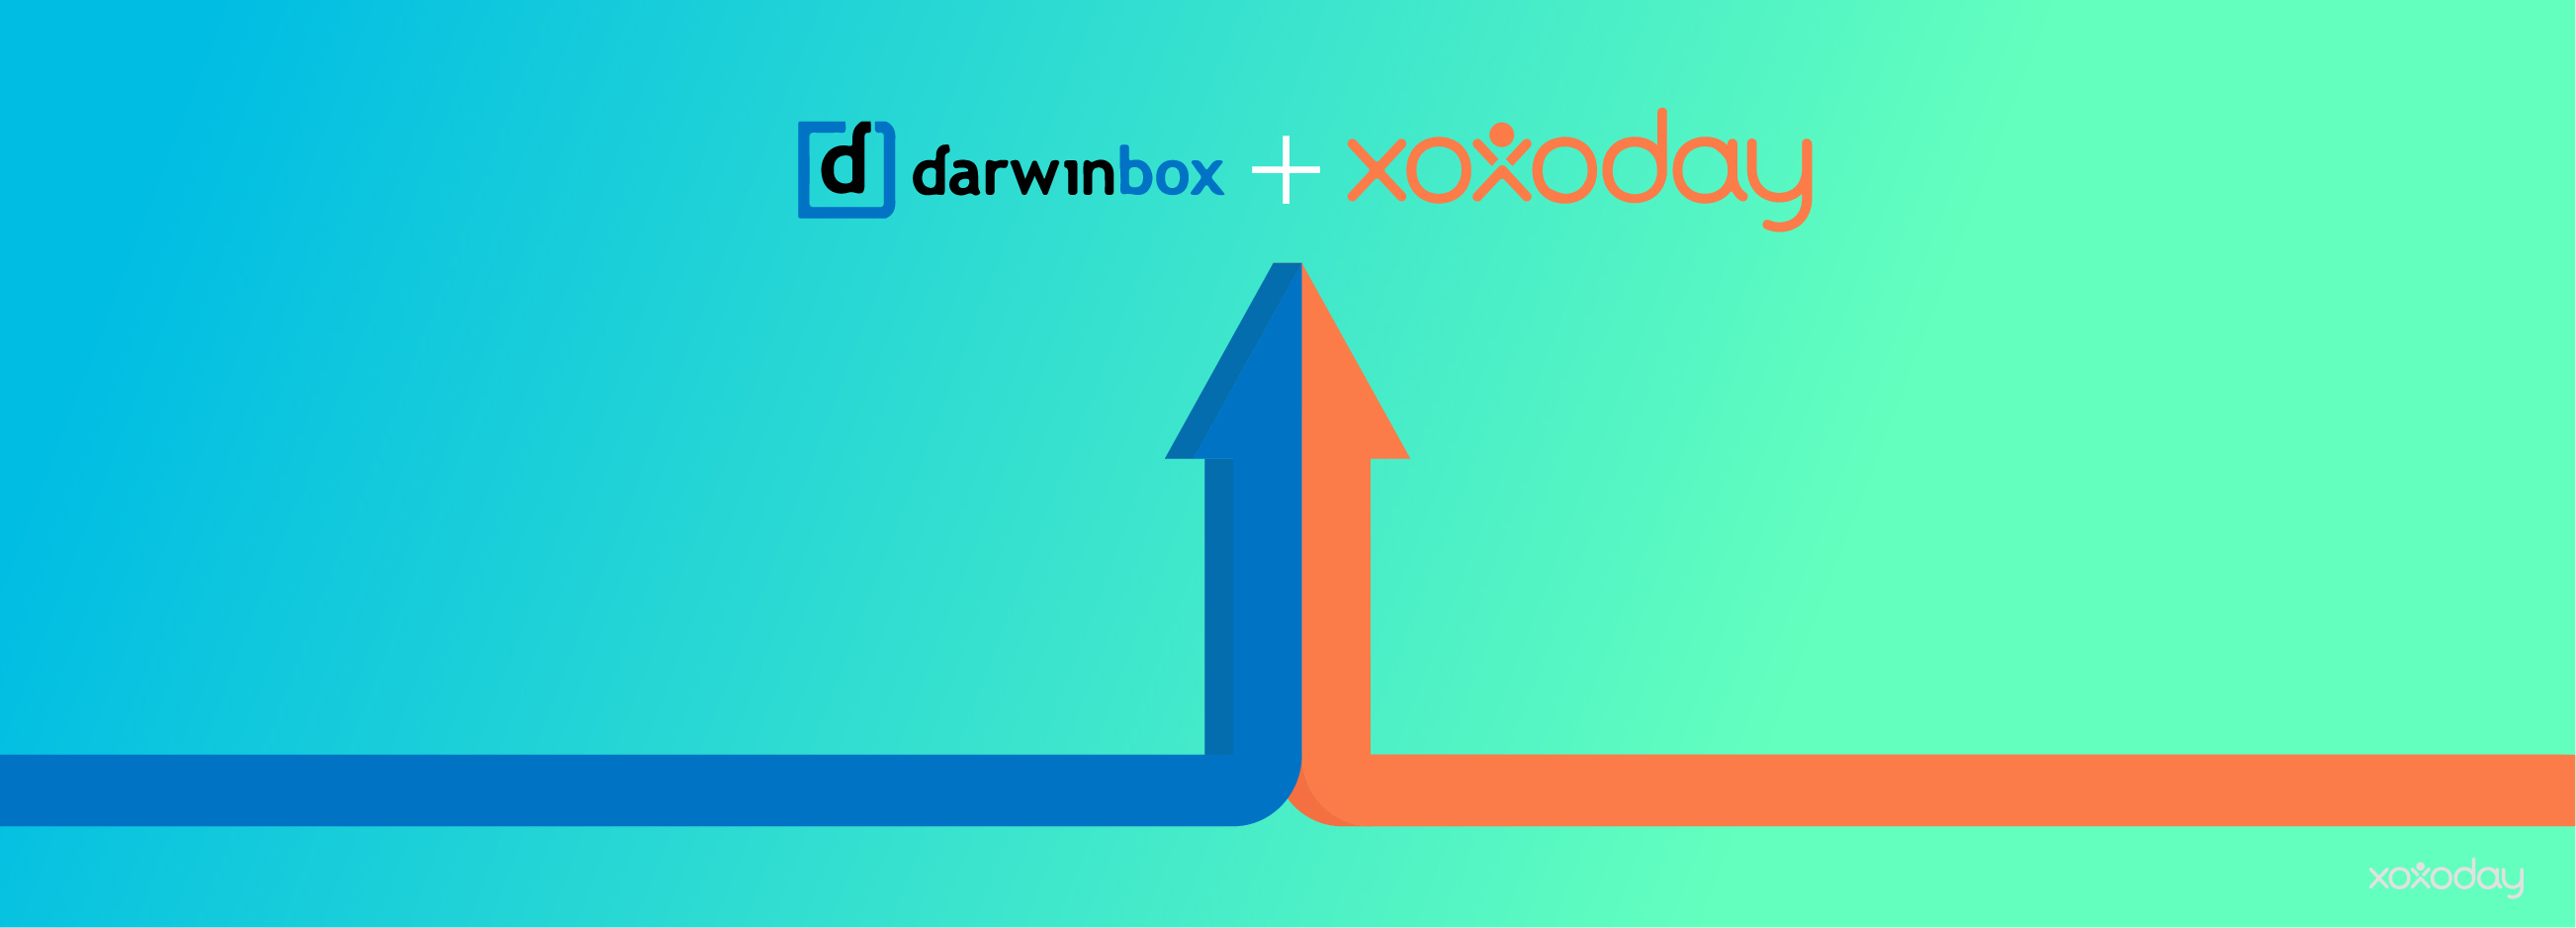 Xoxoday's Plum Integrates with Darwinbox to Create a Reward System for Employees